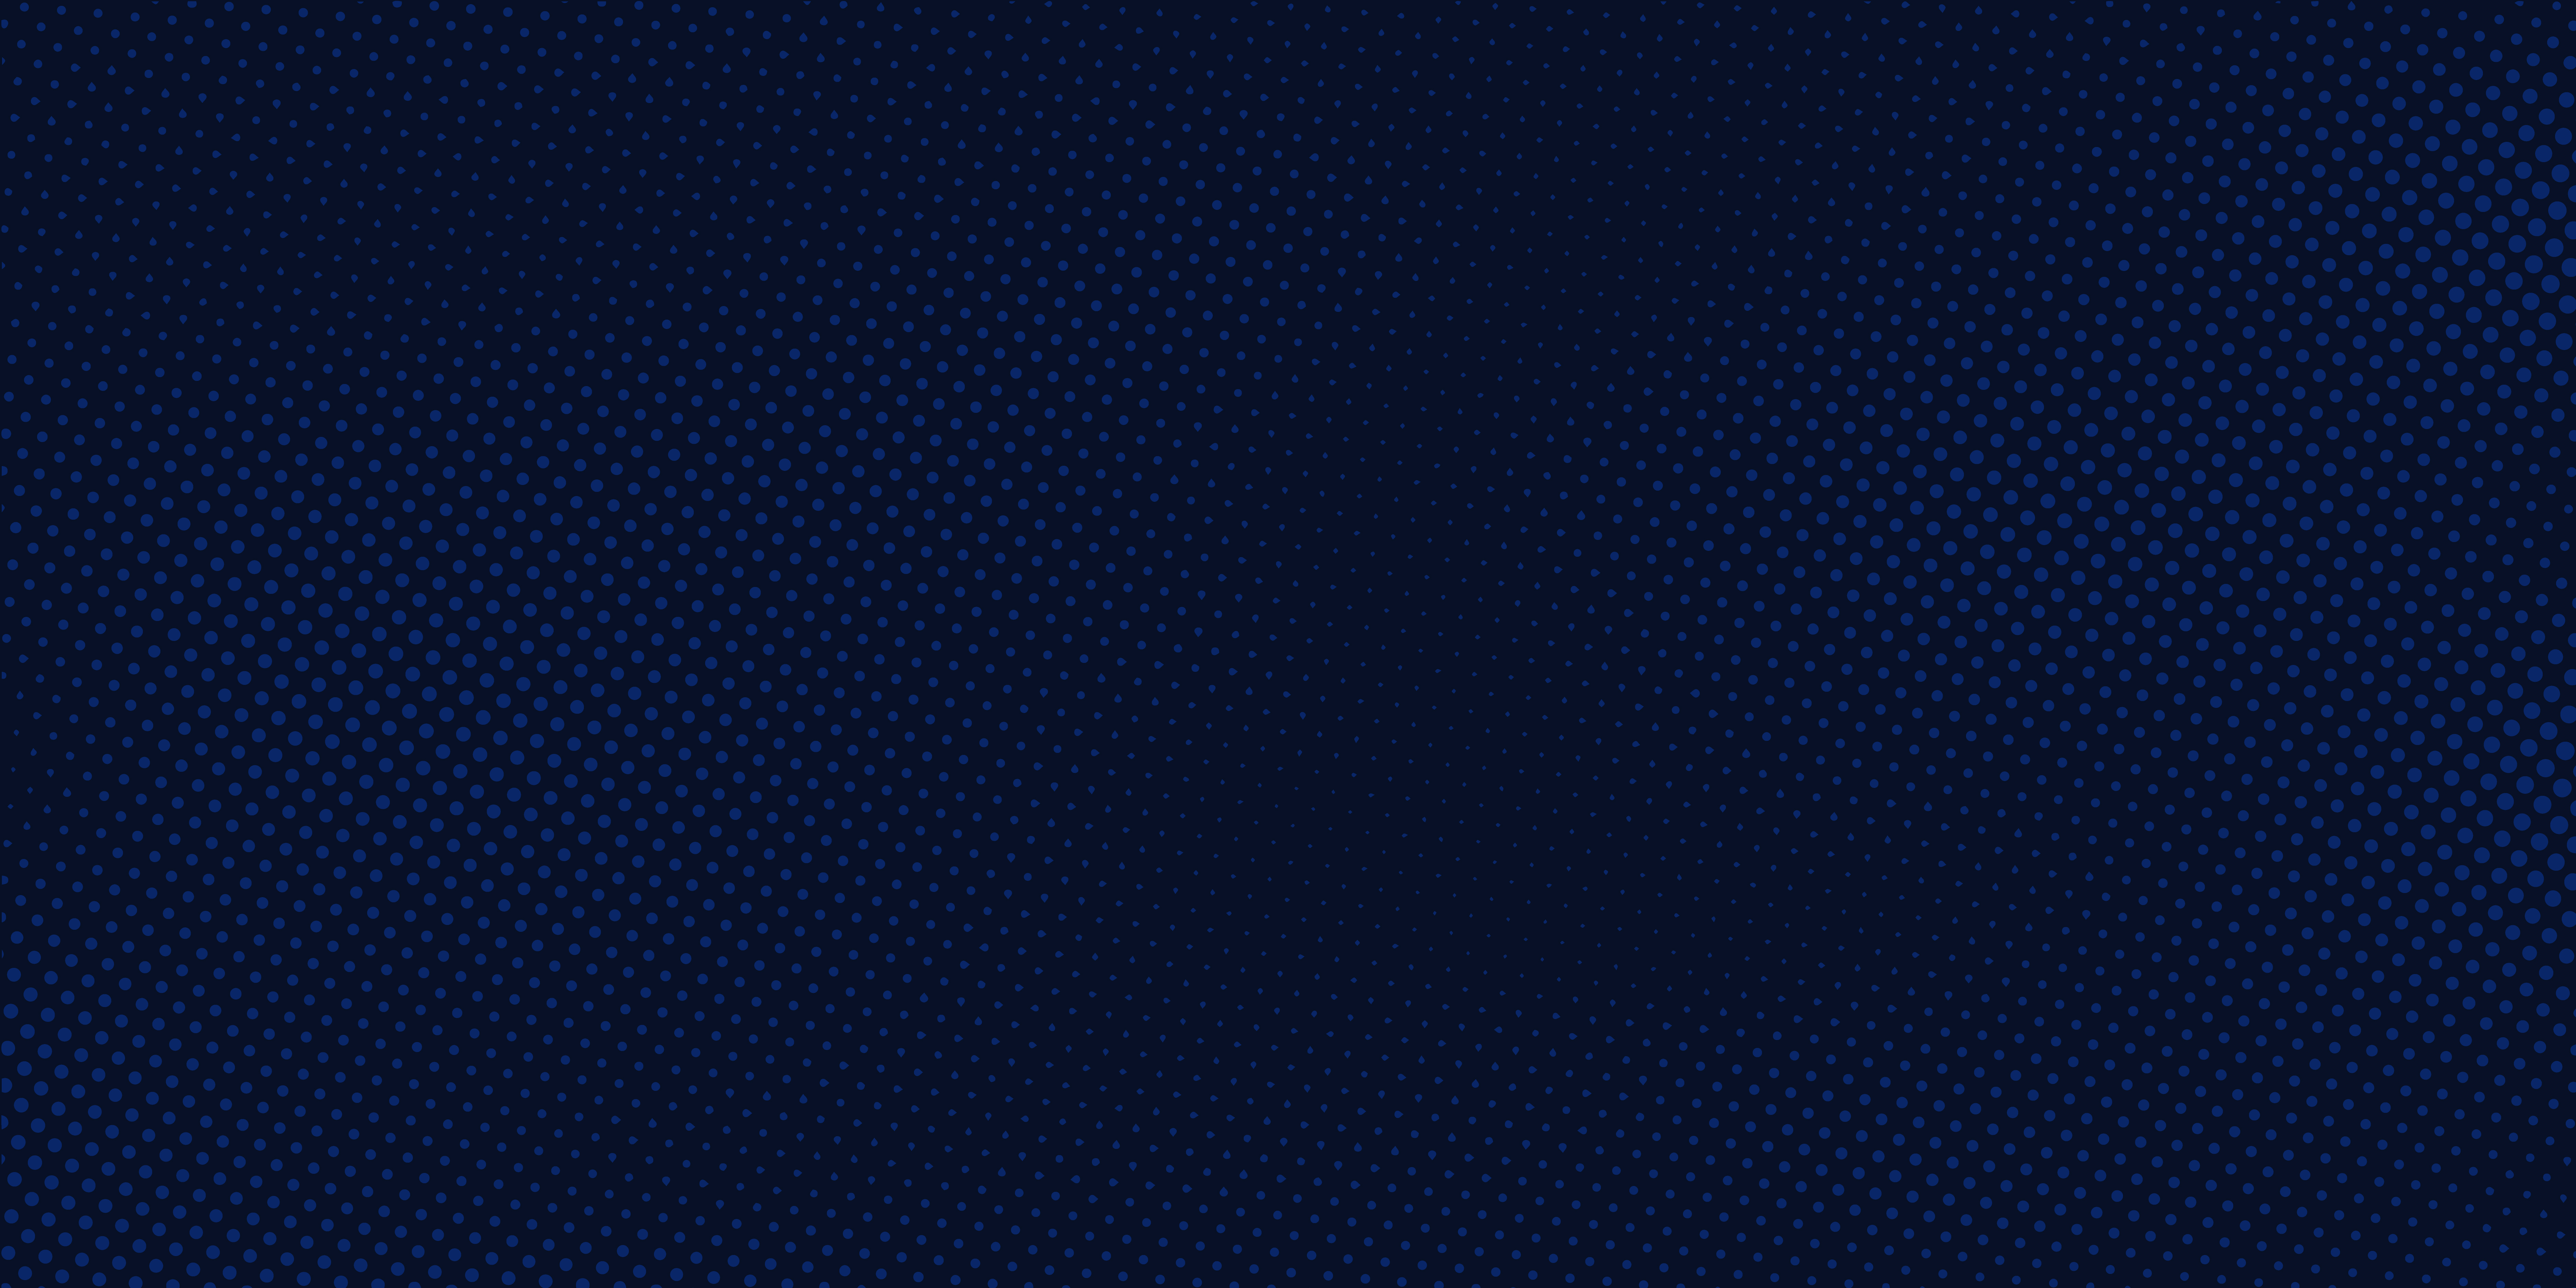 Abstract dark blue background with halftone pattern light